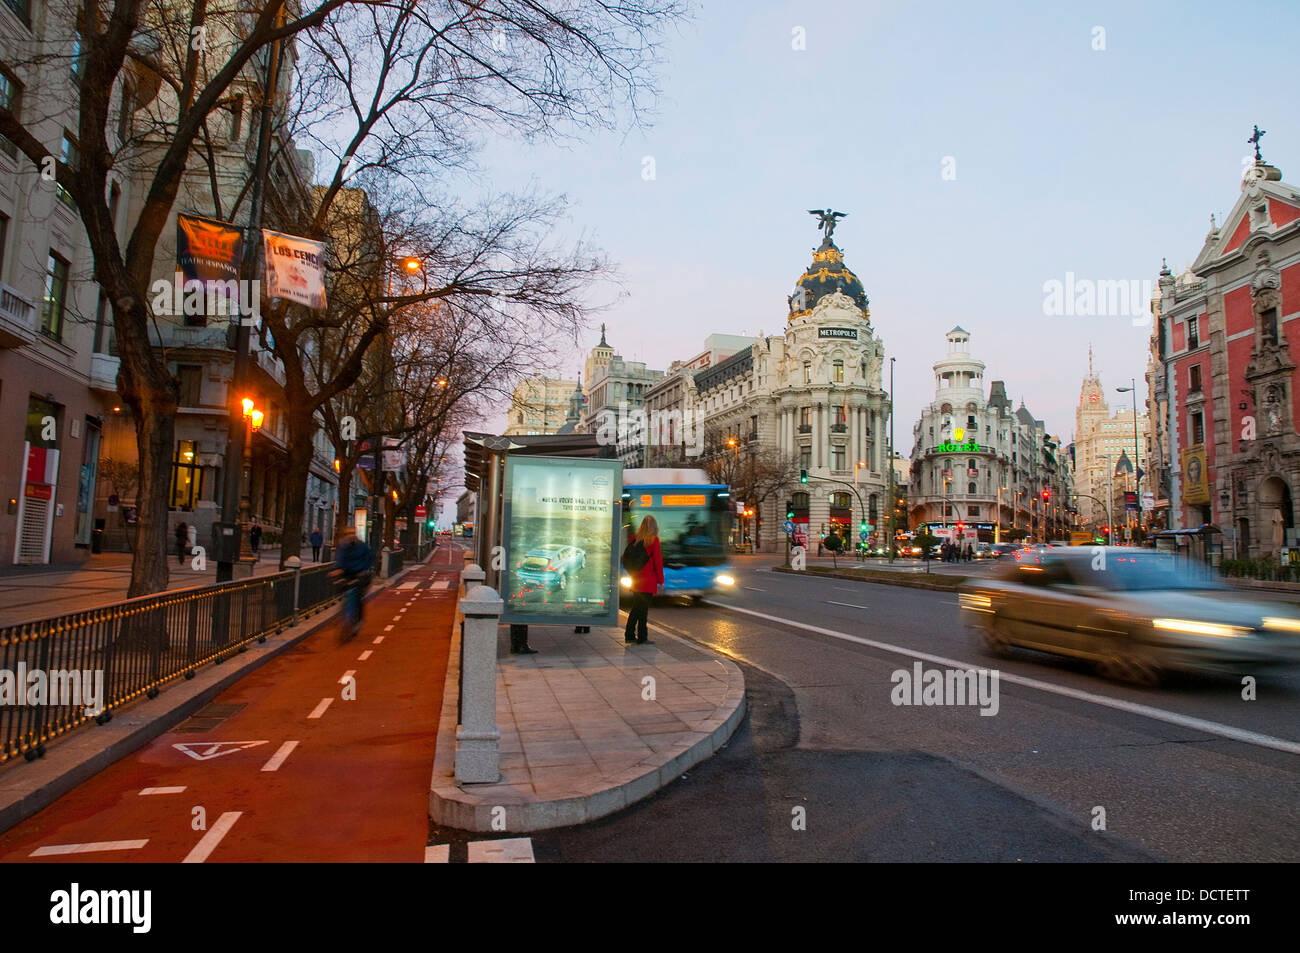 Cycle lane and bus stop at dawn. Alcala street, Madrid, Spain. Stock Photo